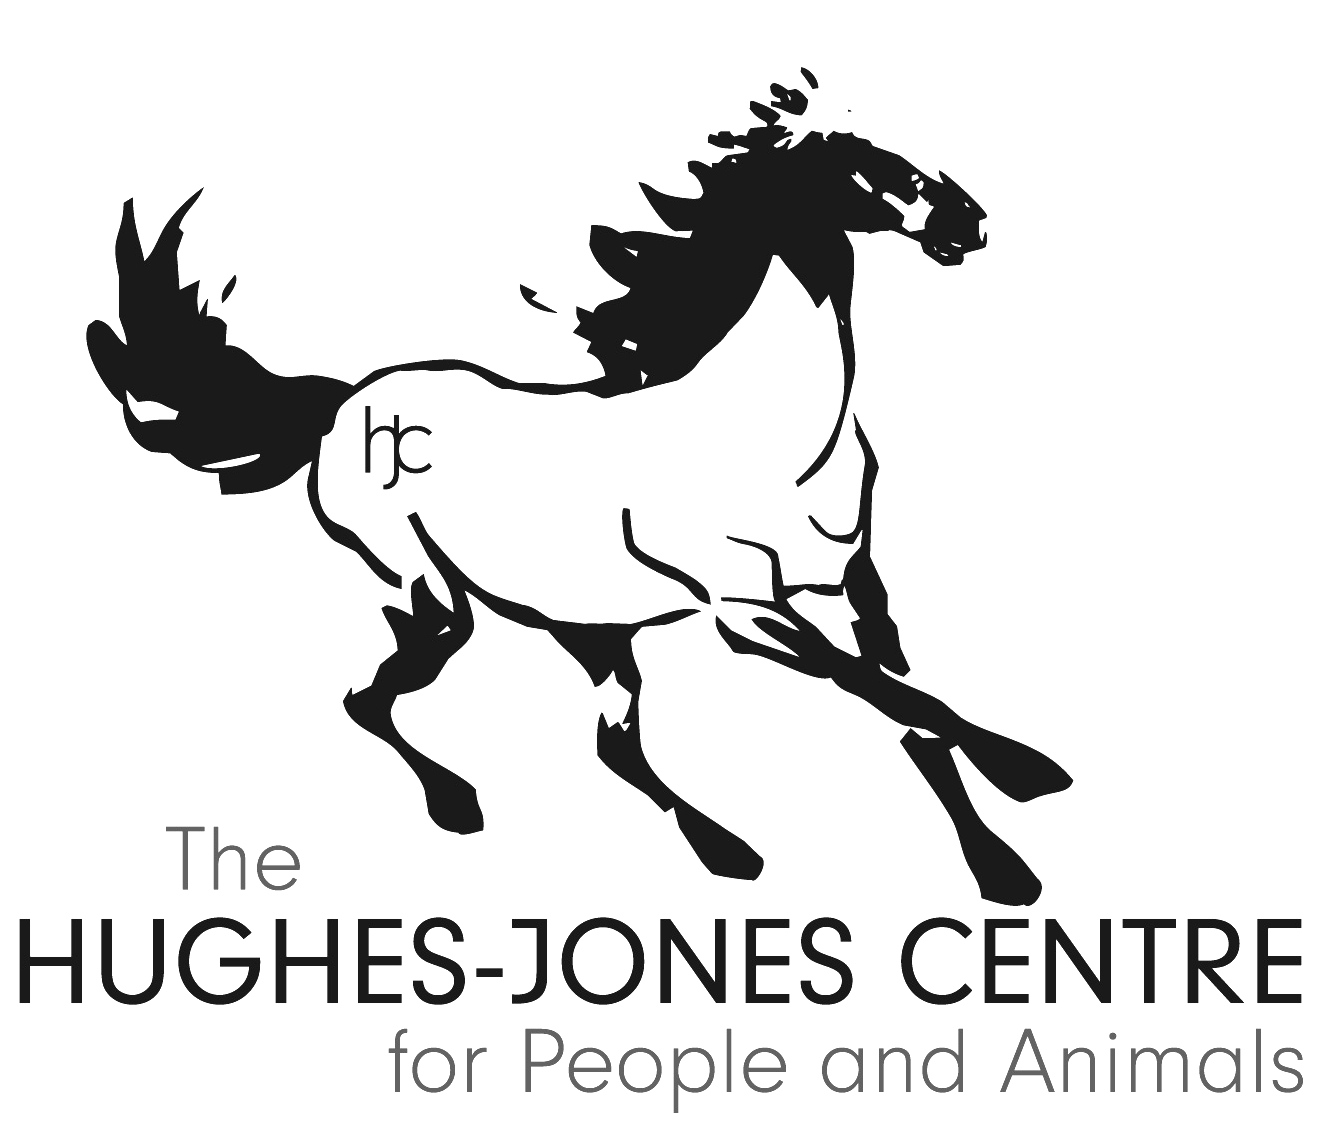 The Hughes-Jones Centre for People and Animals